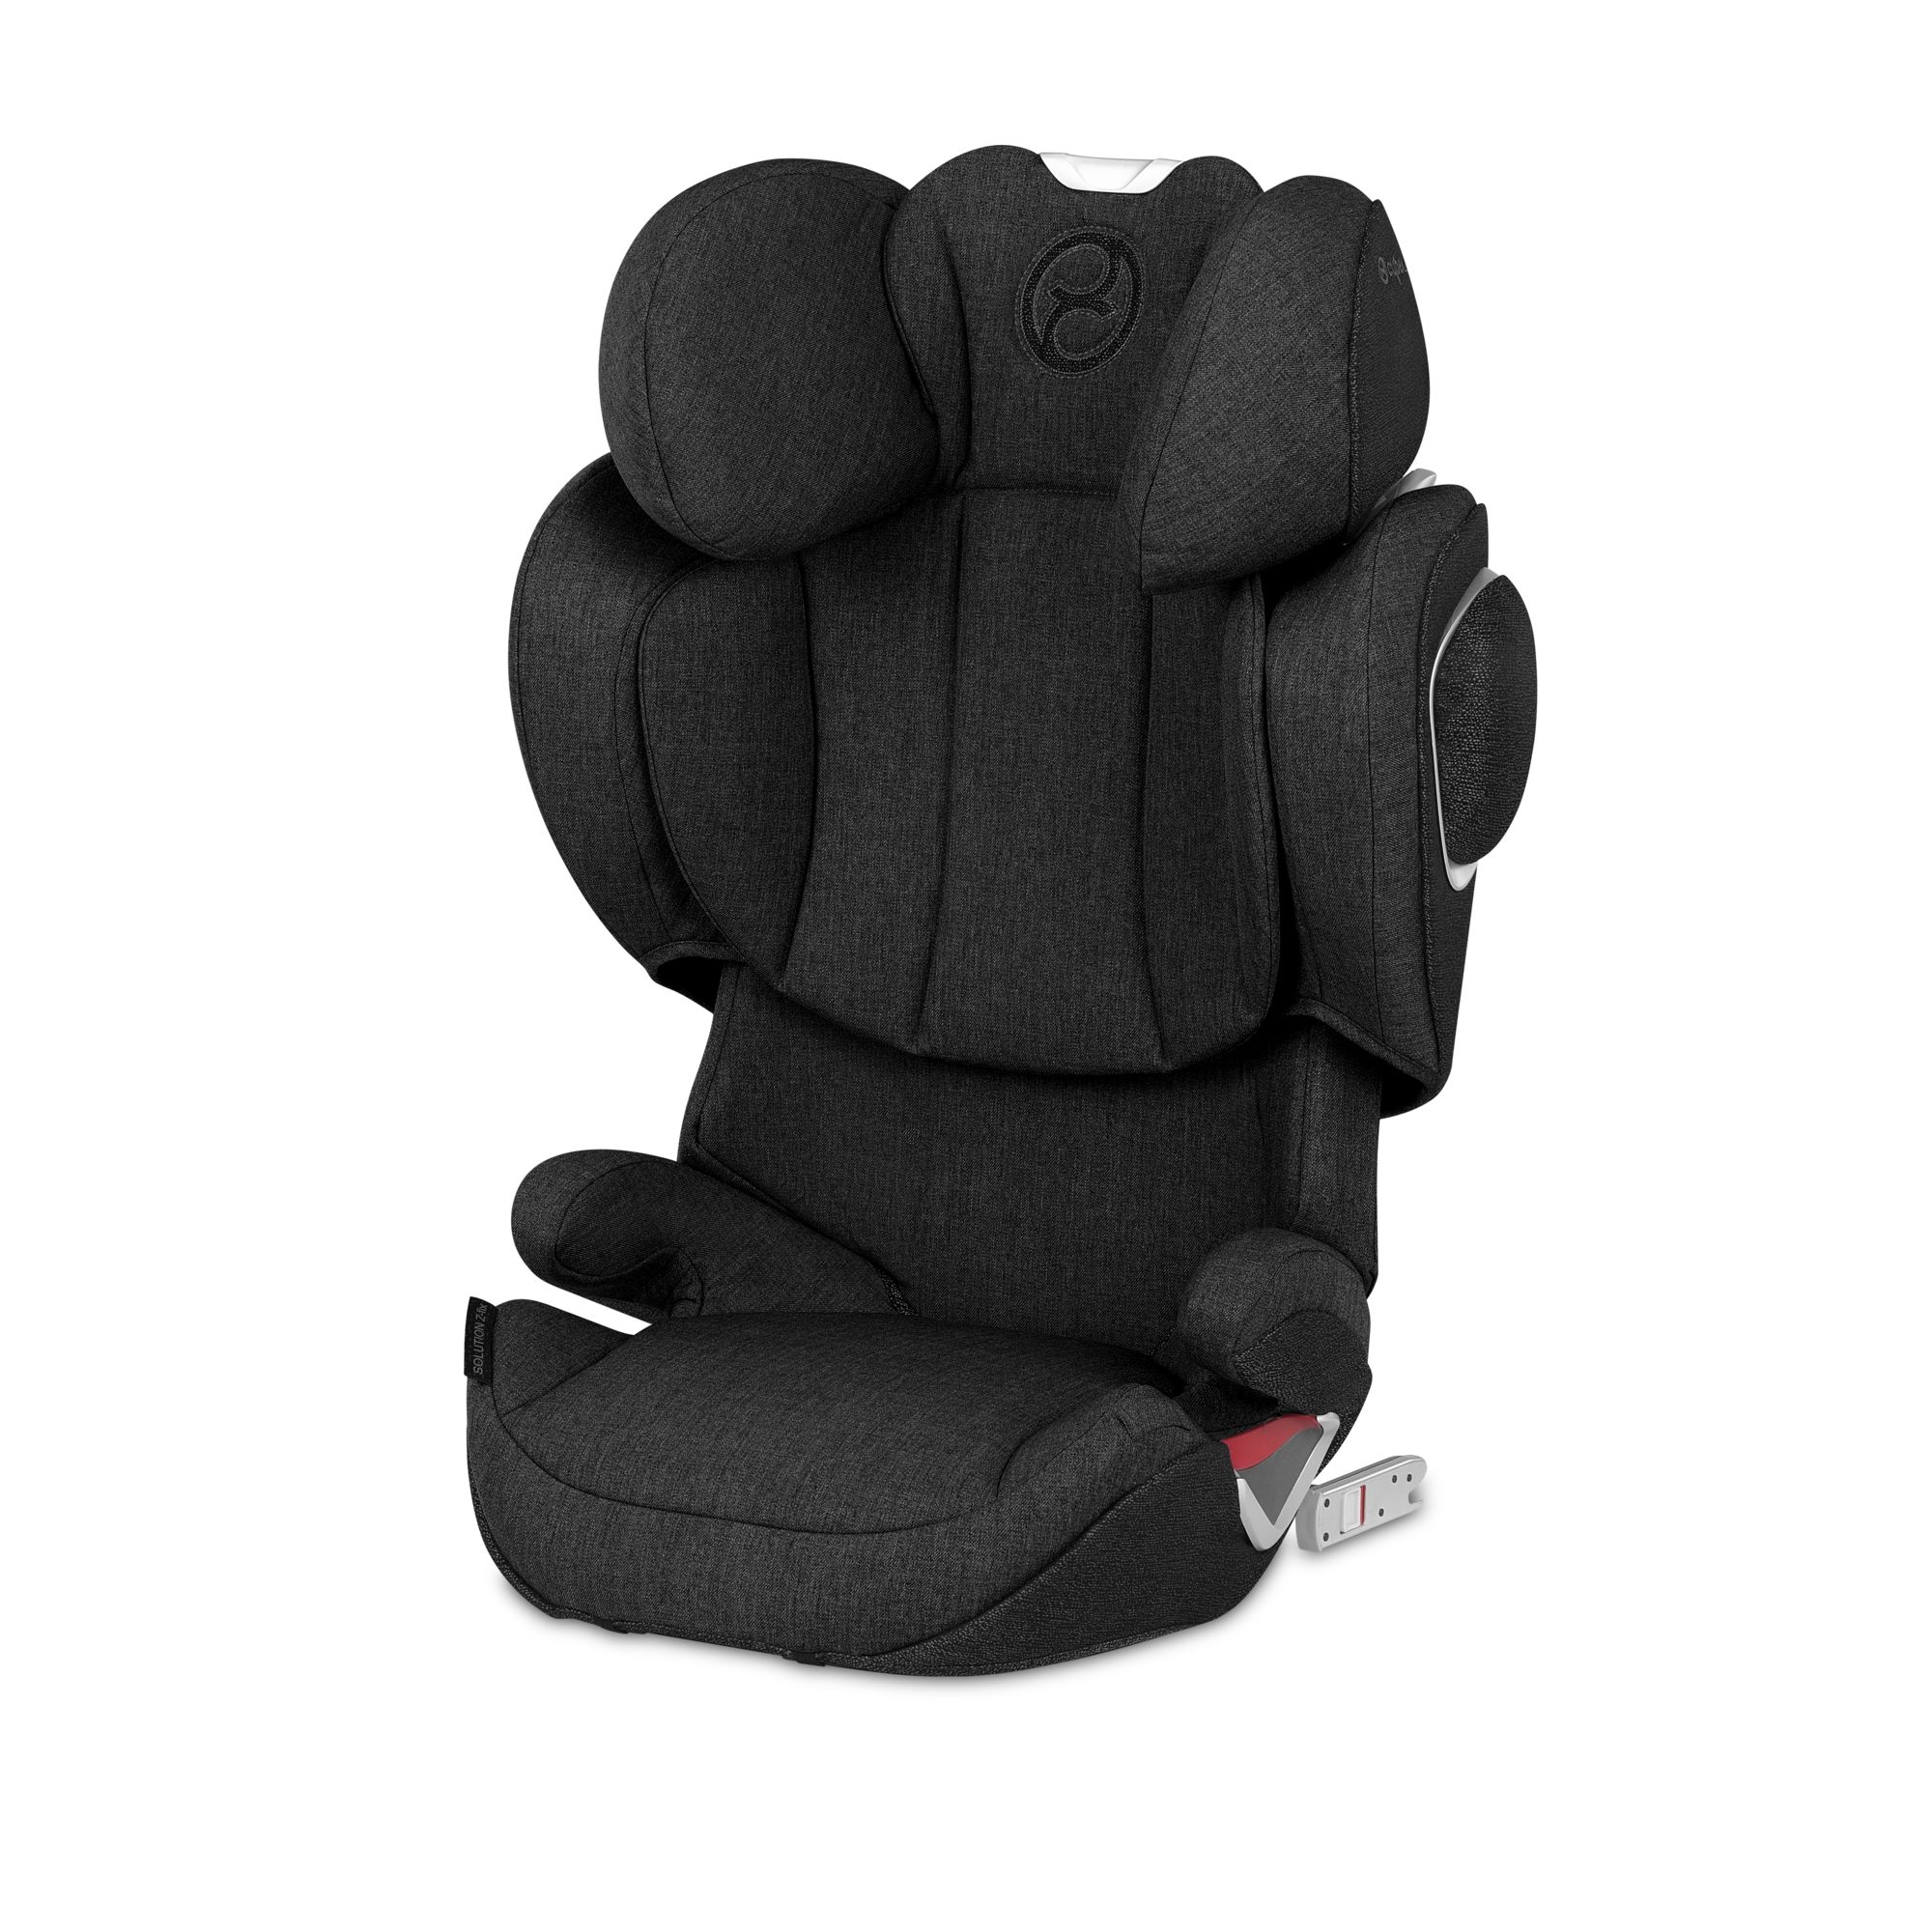 Автокресло Cybex Solution Z-fix Stardust Black, черный